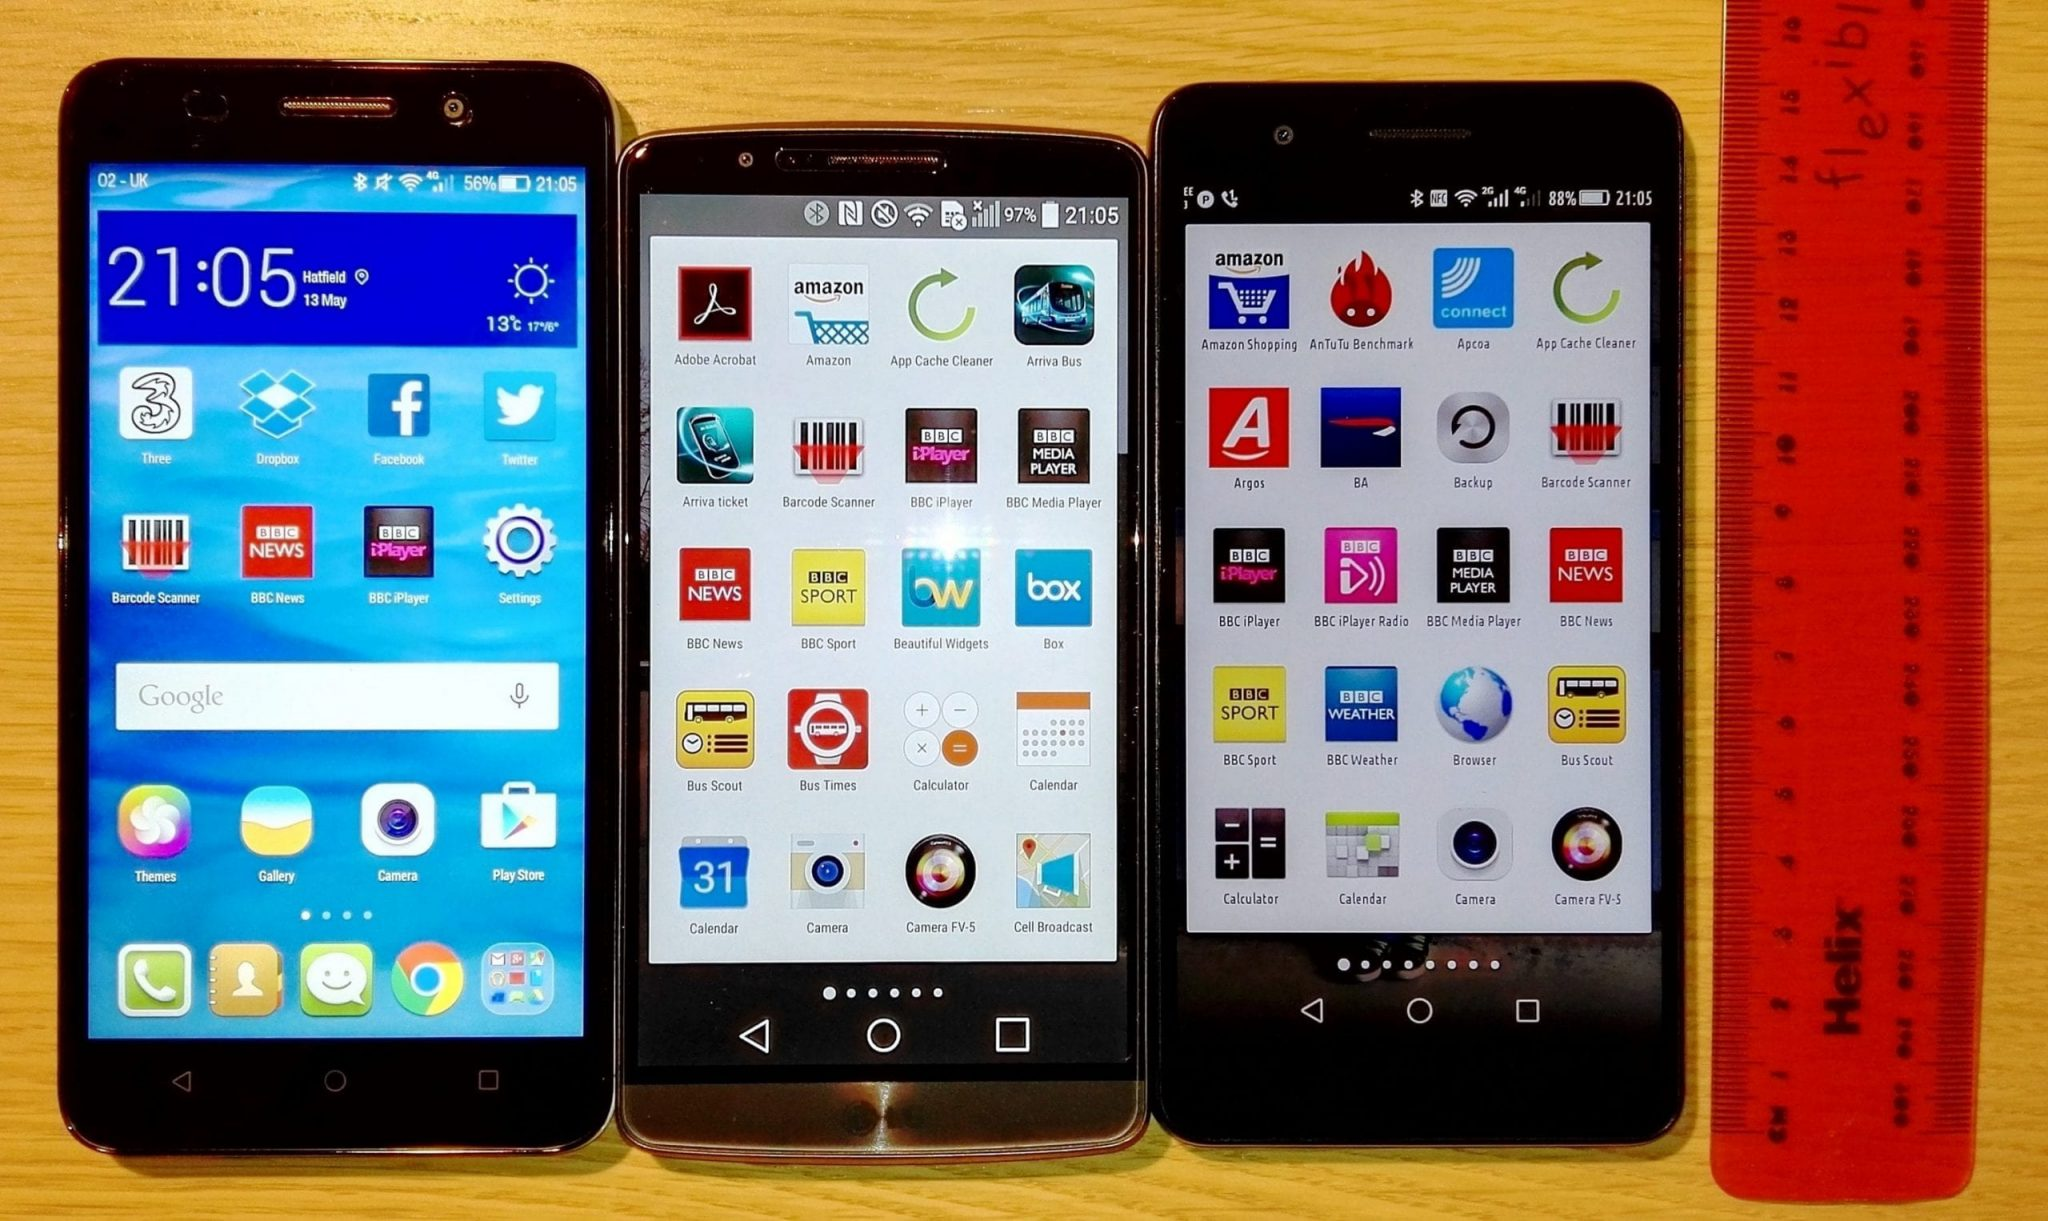 How they compare: Honor 4X left, LG G3 middle, Honor 6 Plus right